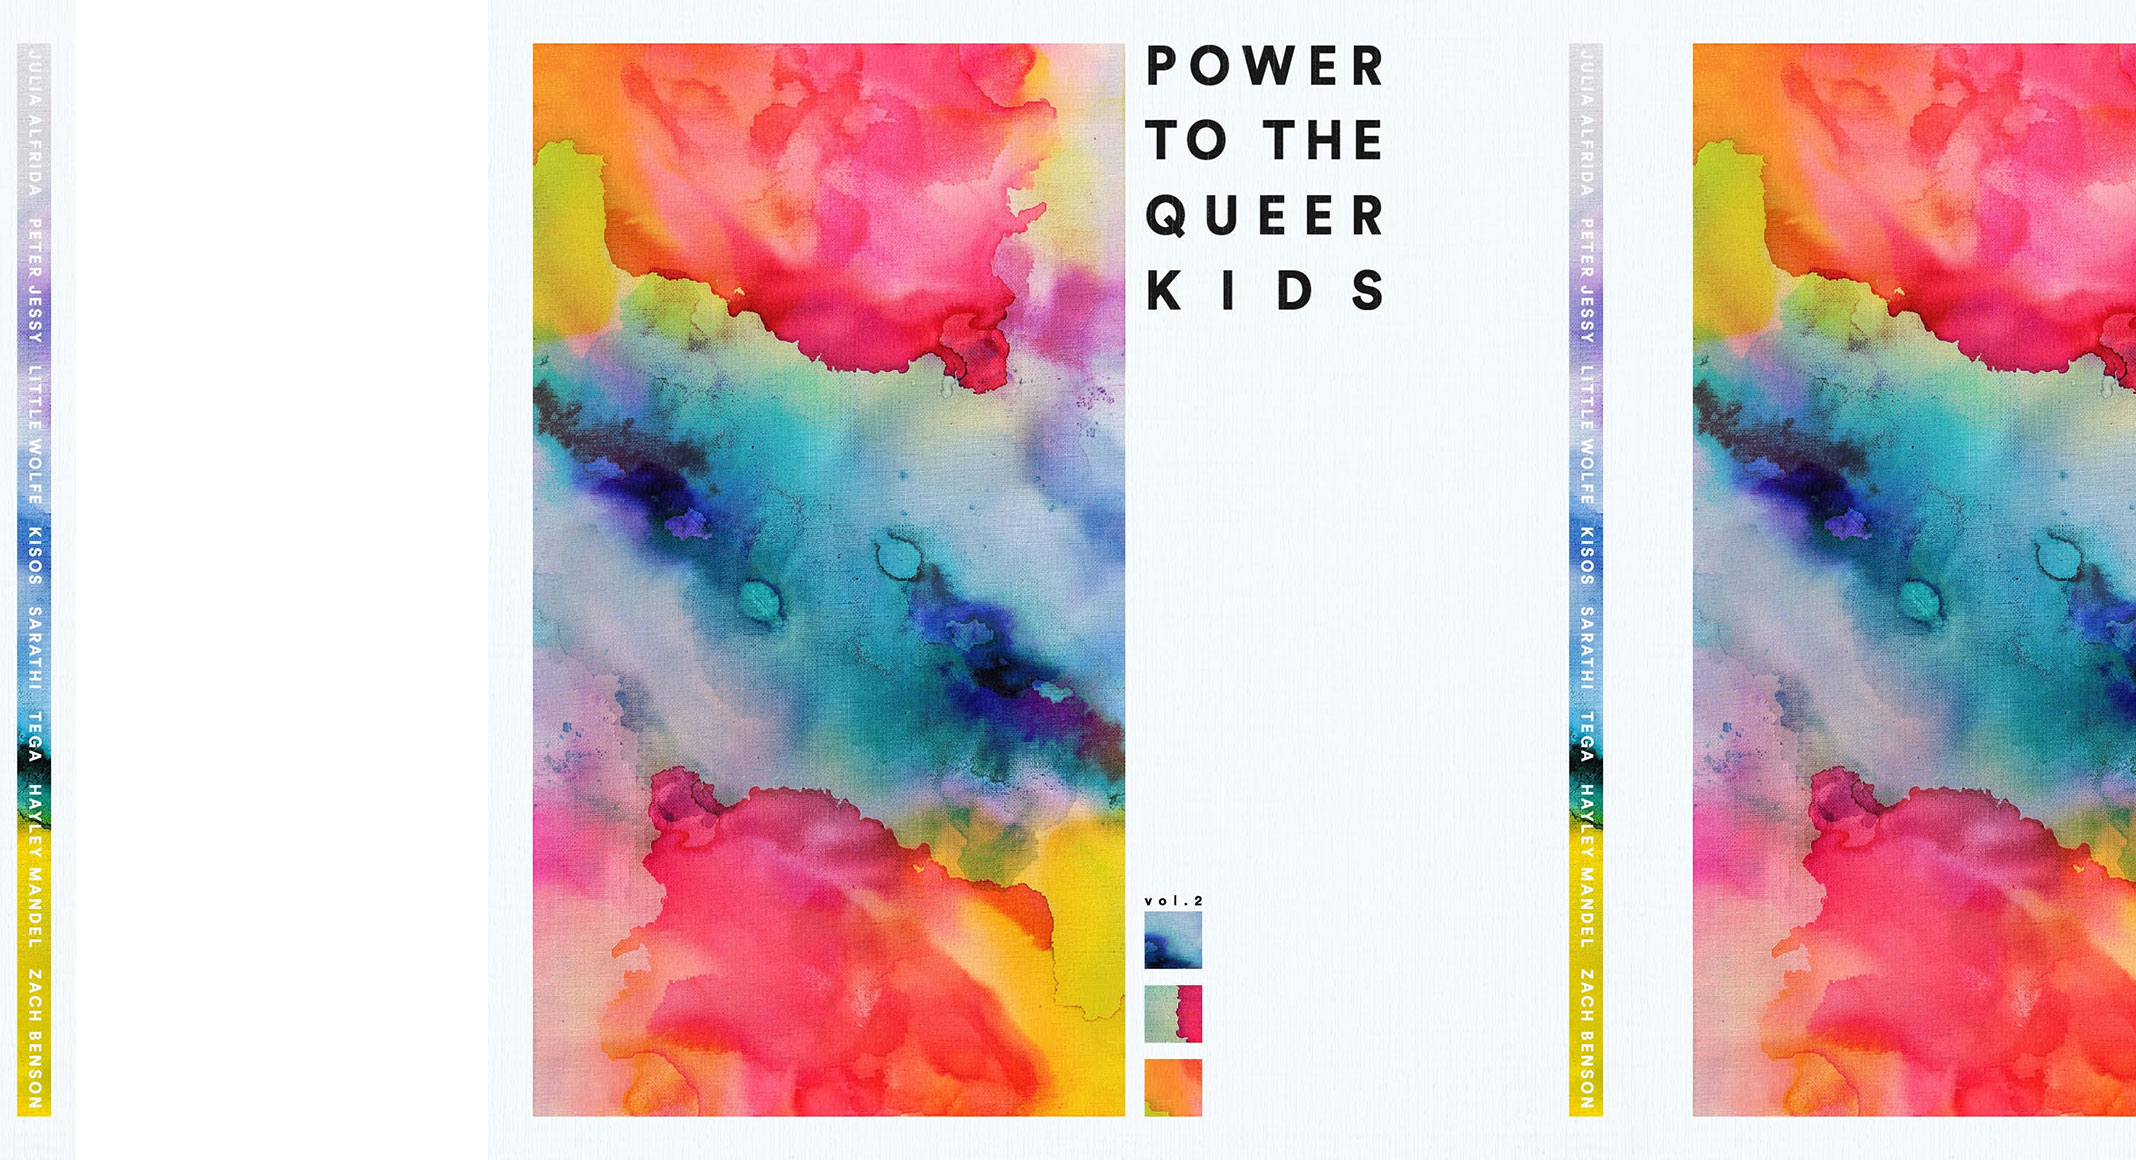 Power to the Queer Kids